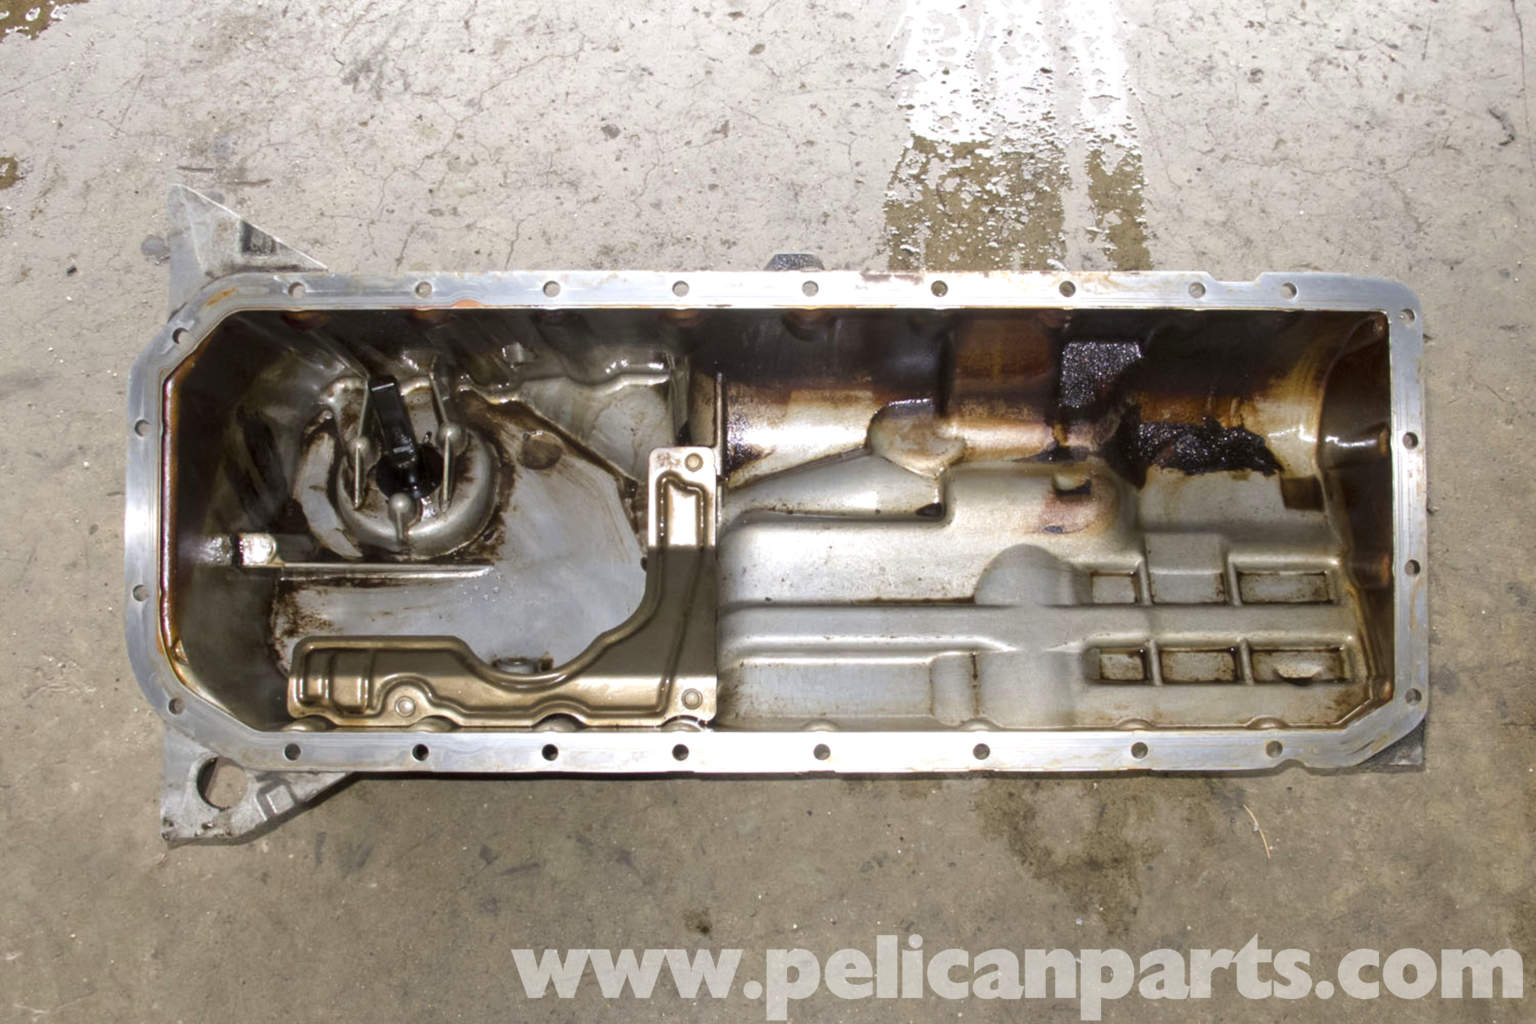 Diy Oil Pan Replacement On A 1996 Cadillac Deville Diy